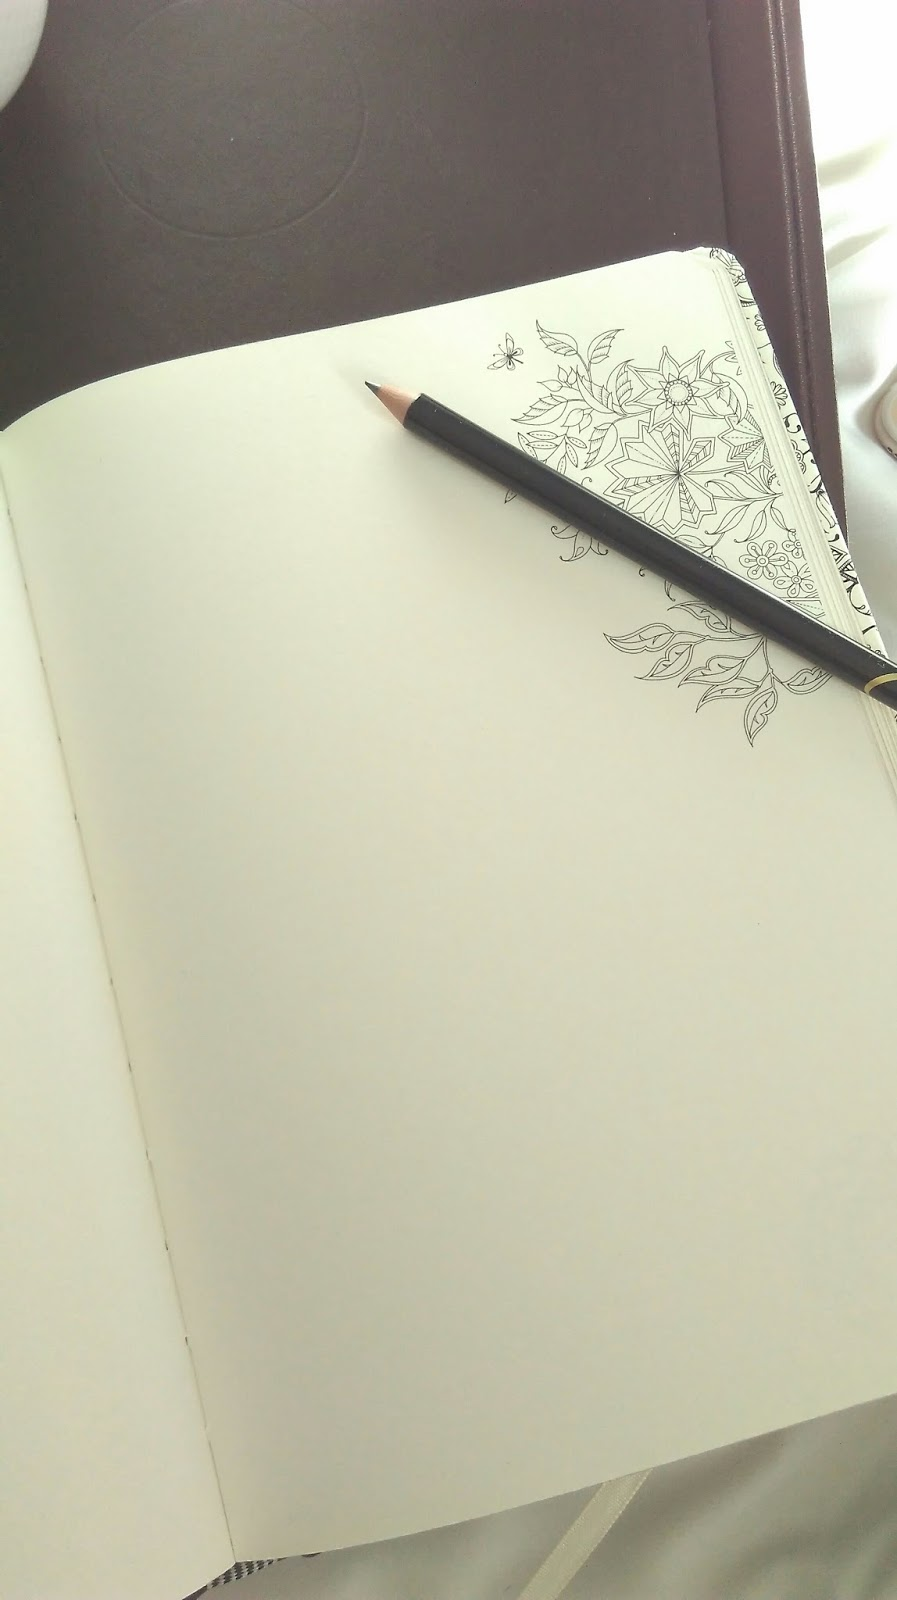 Decorated With Intricate And Hand Drawn Pen Ink Illustrations The Beautifully Produced Hardback Journal Also Is Perfect Decoration For A Coffee